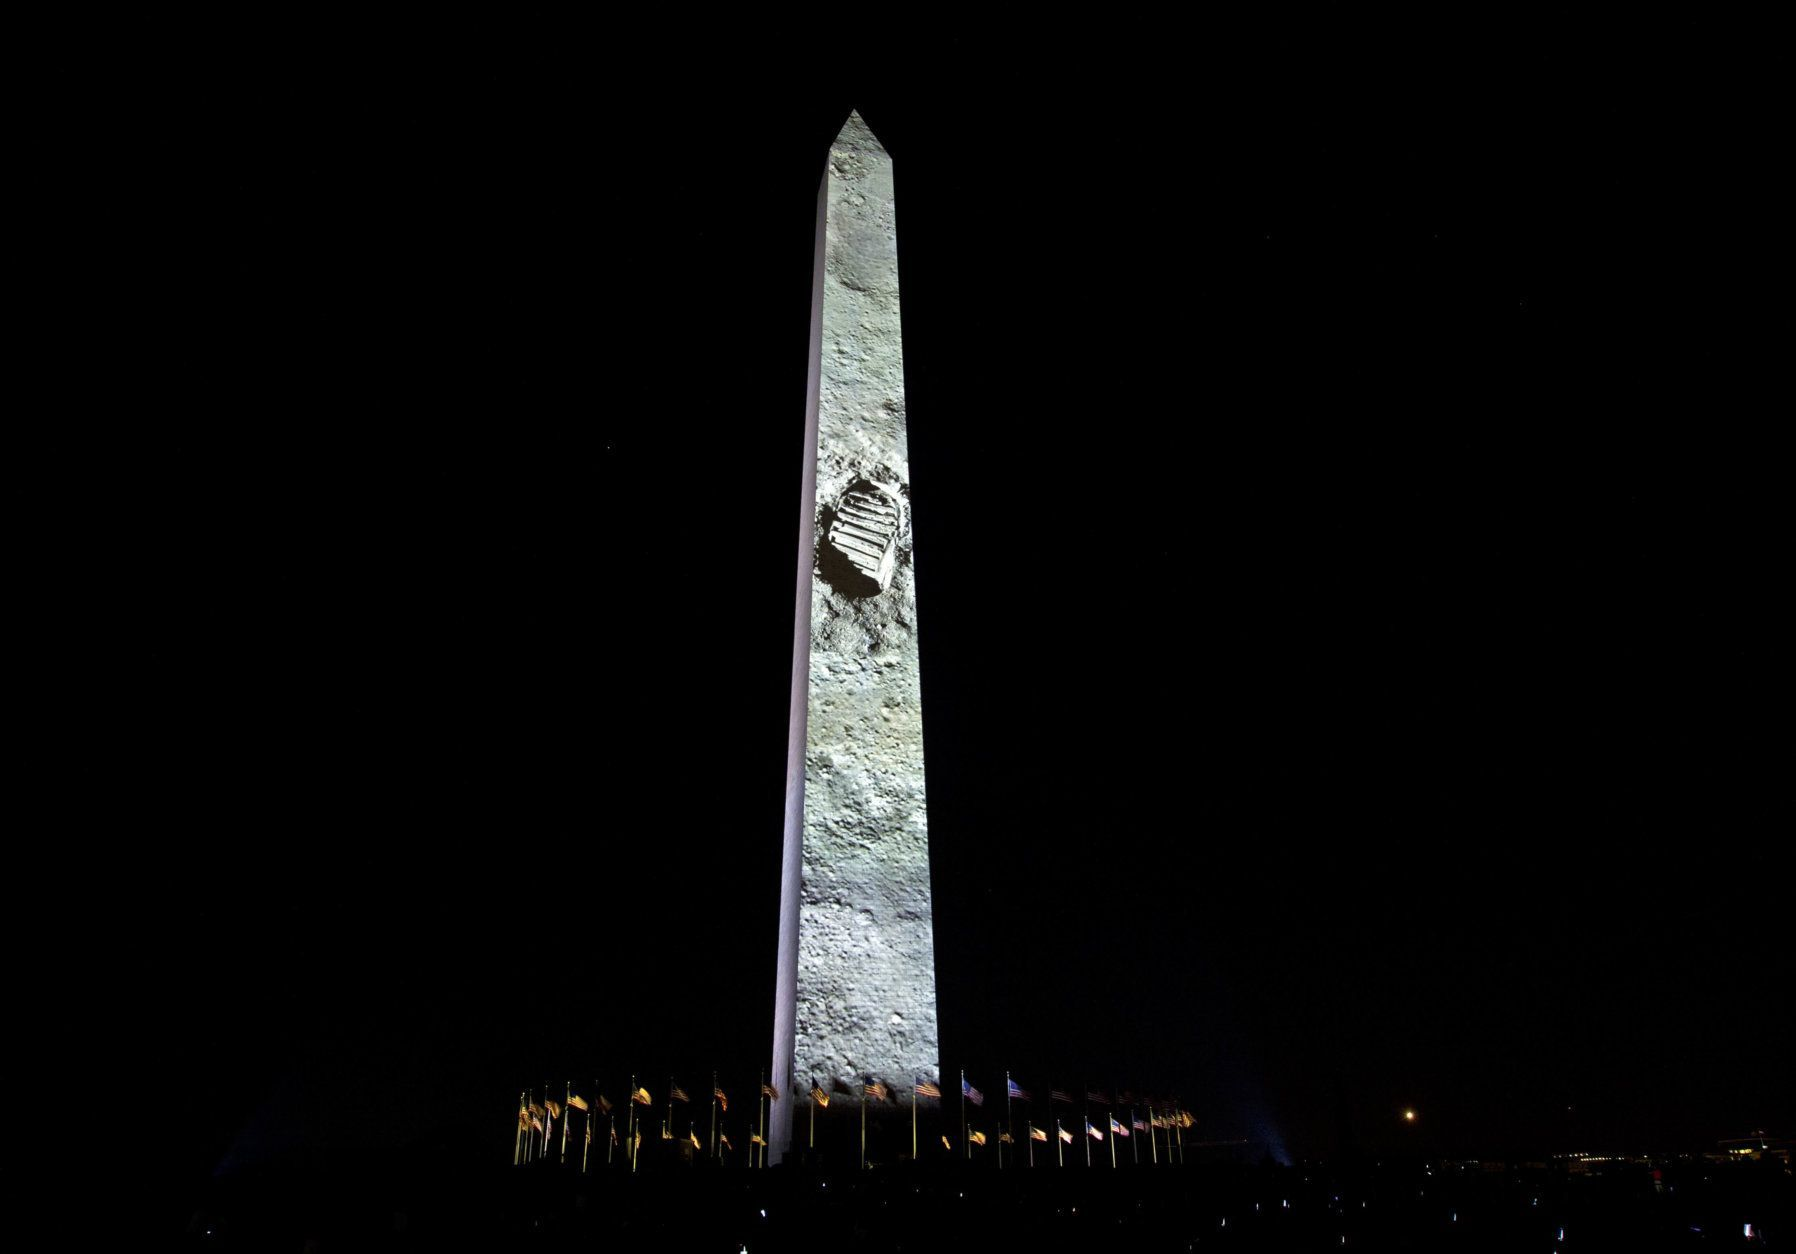 Neil Armstrong foot print on the rocky Moon is projected on the Washington Monument, during the 50th anniversary of the Apollo moon landing festivities at the National Mall in Washington, Friday, July 19, 2019. (AP Photo/Jose Luis Magana)